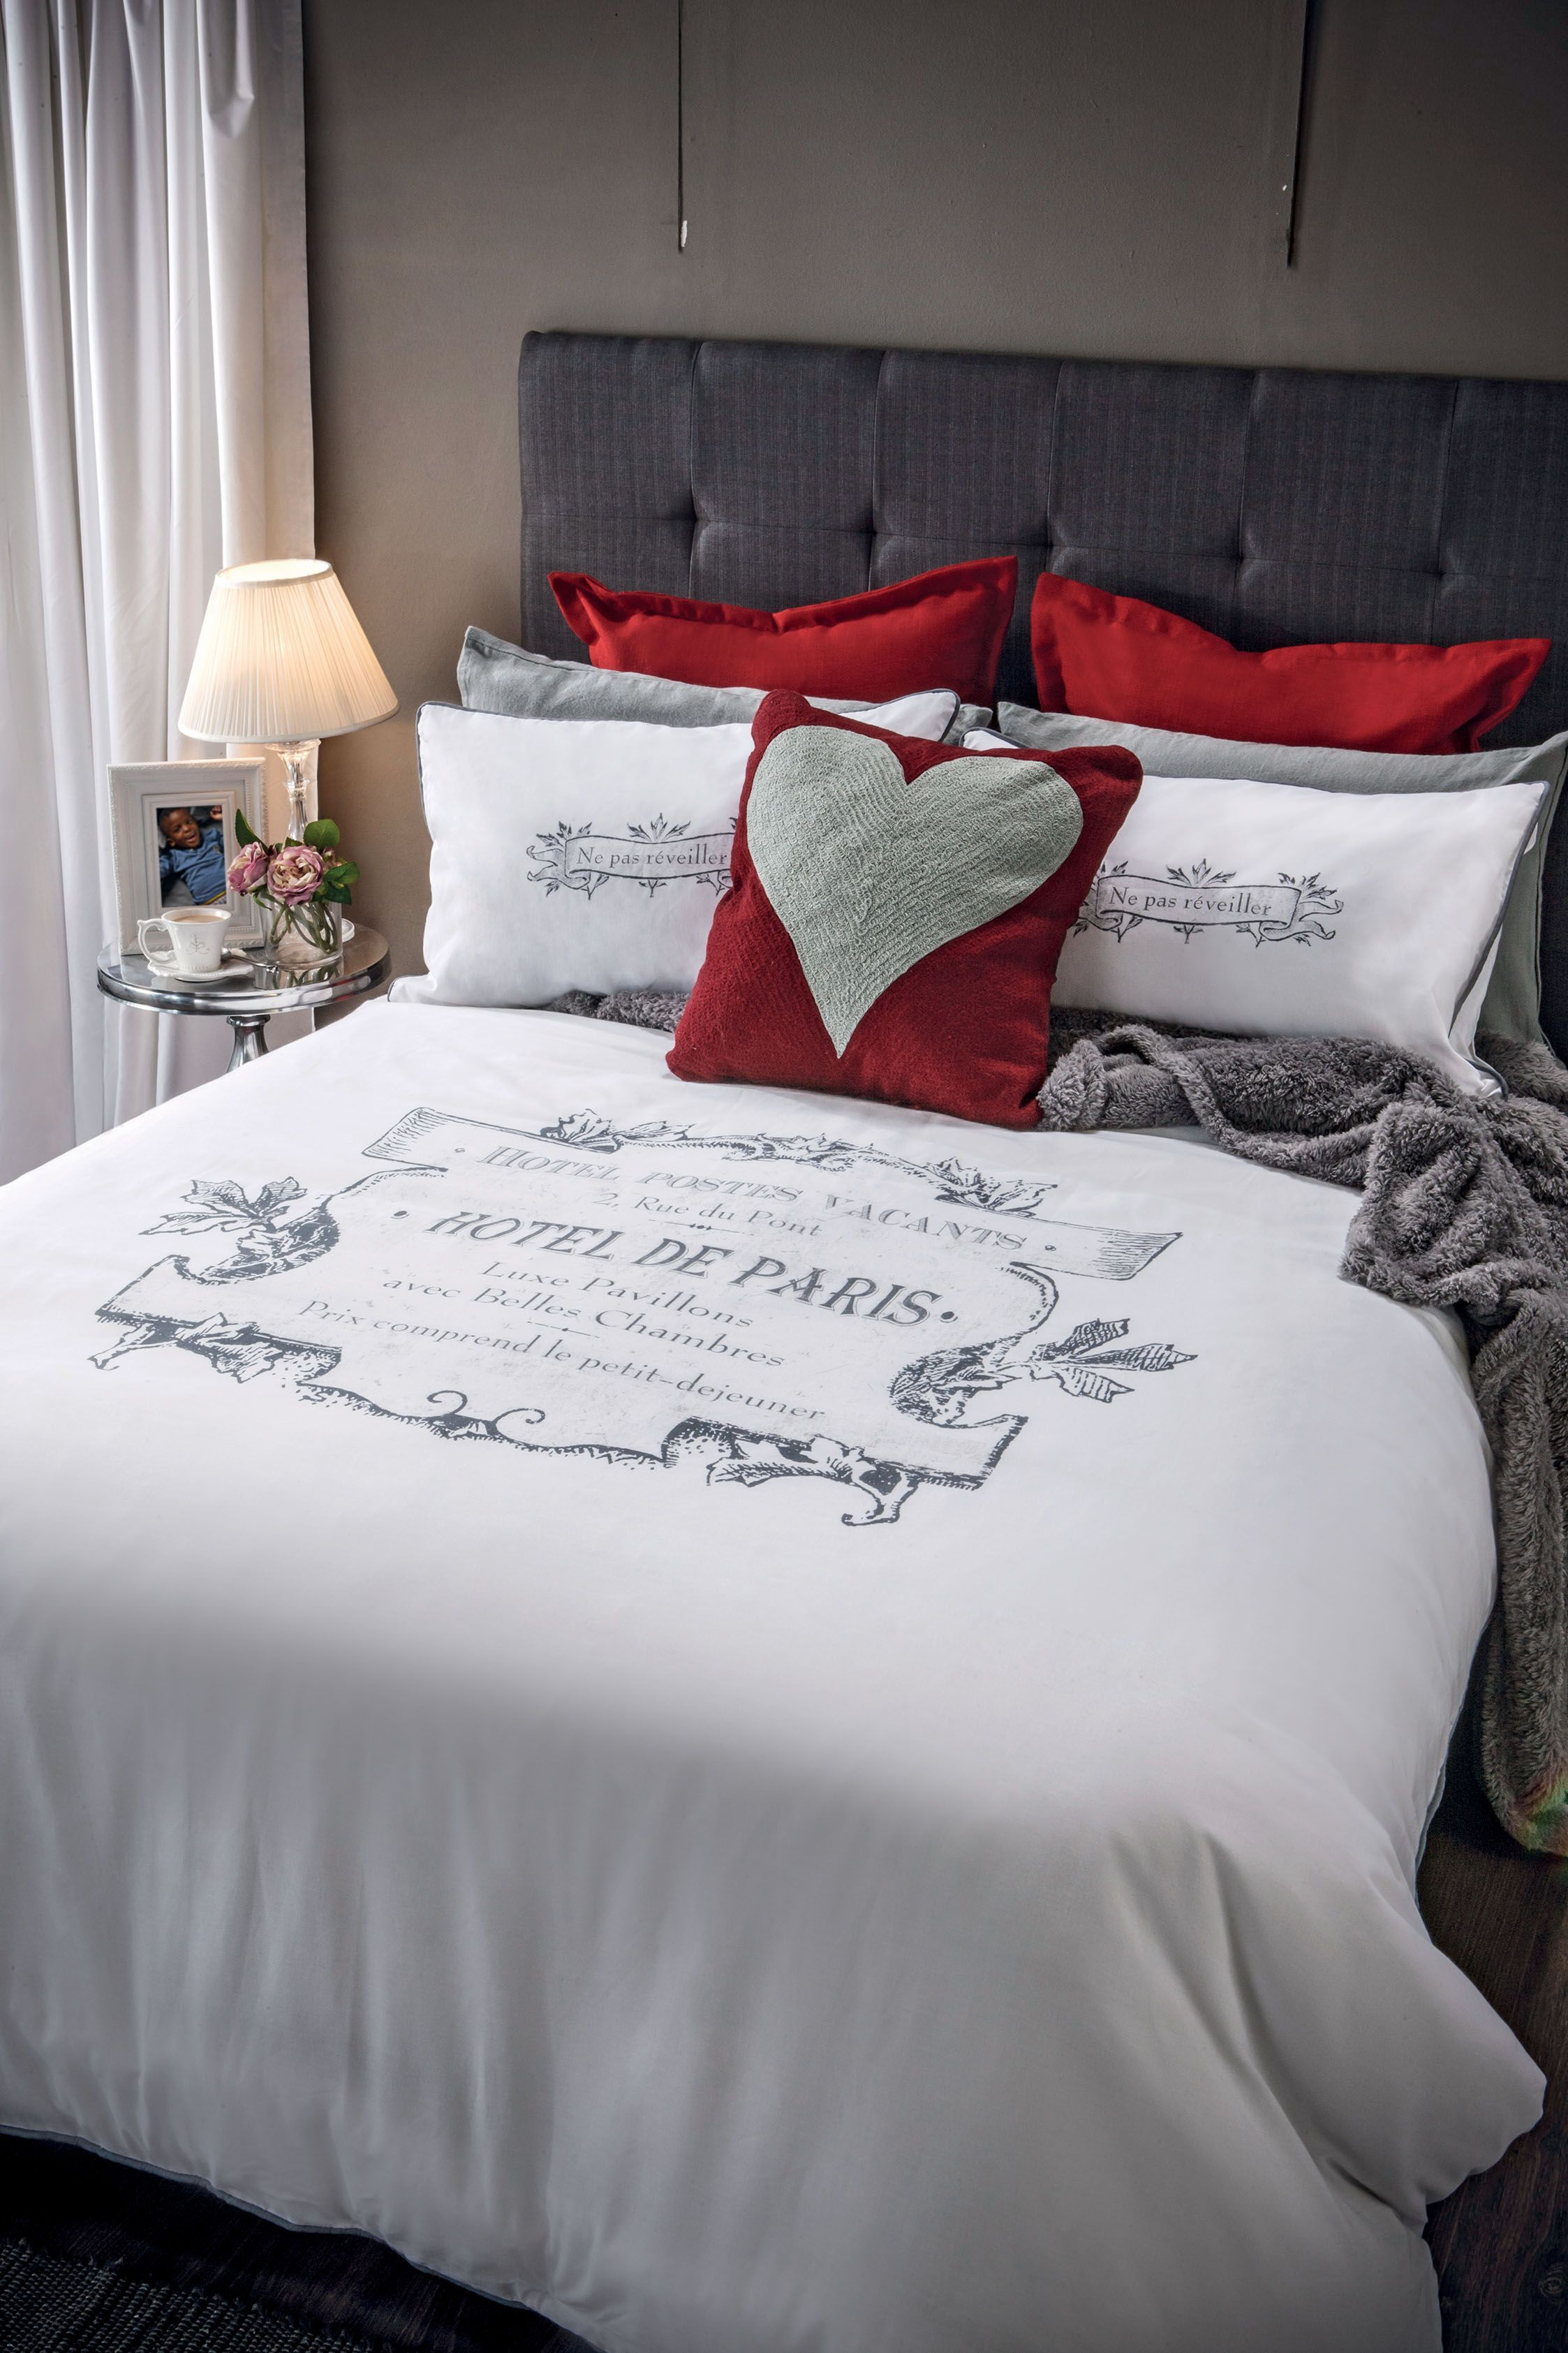 Visit Www Mrpricehome Com To View More Great Bedroom Ideas Mr Price Home Bedroom Decor Scandinavian Style Bedroom